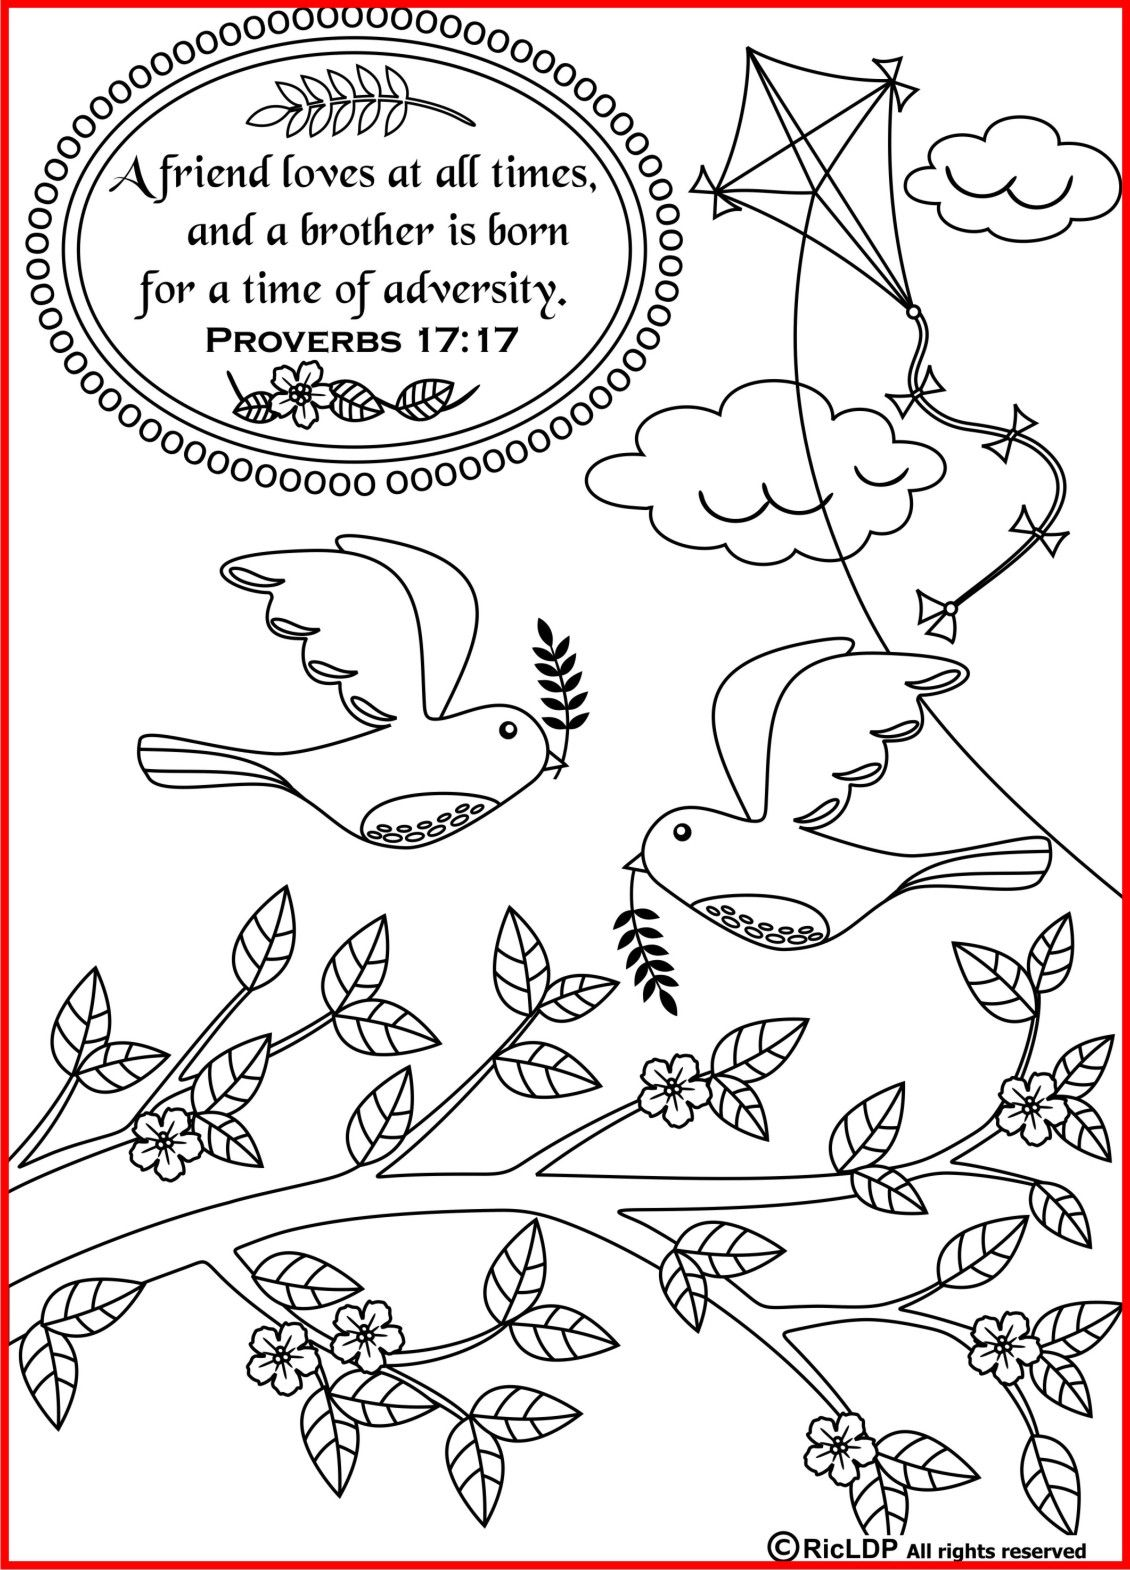 15 Printable Bible Verse Coloring Pages | Pinterest | Pdf, Filing ...